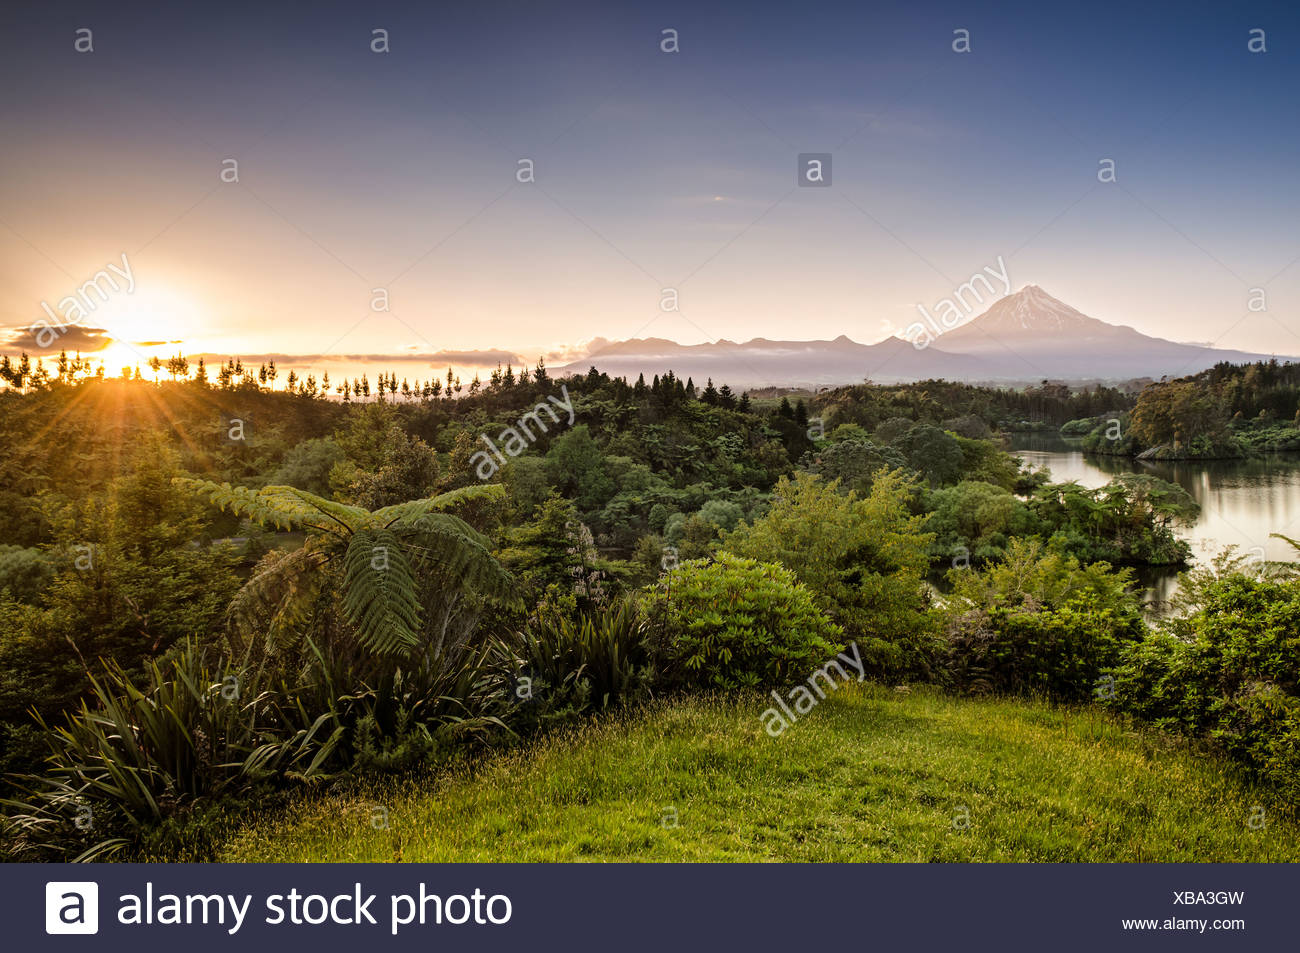 Mt. Egmont, Mt. Taranaki, currently an inactive volcano, North Island, New Zealand - Stock Image